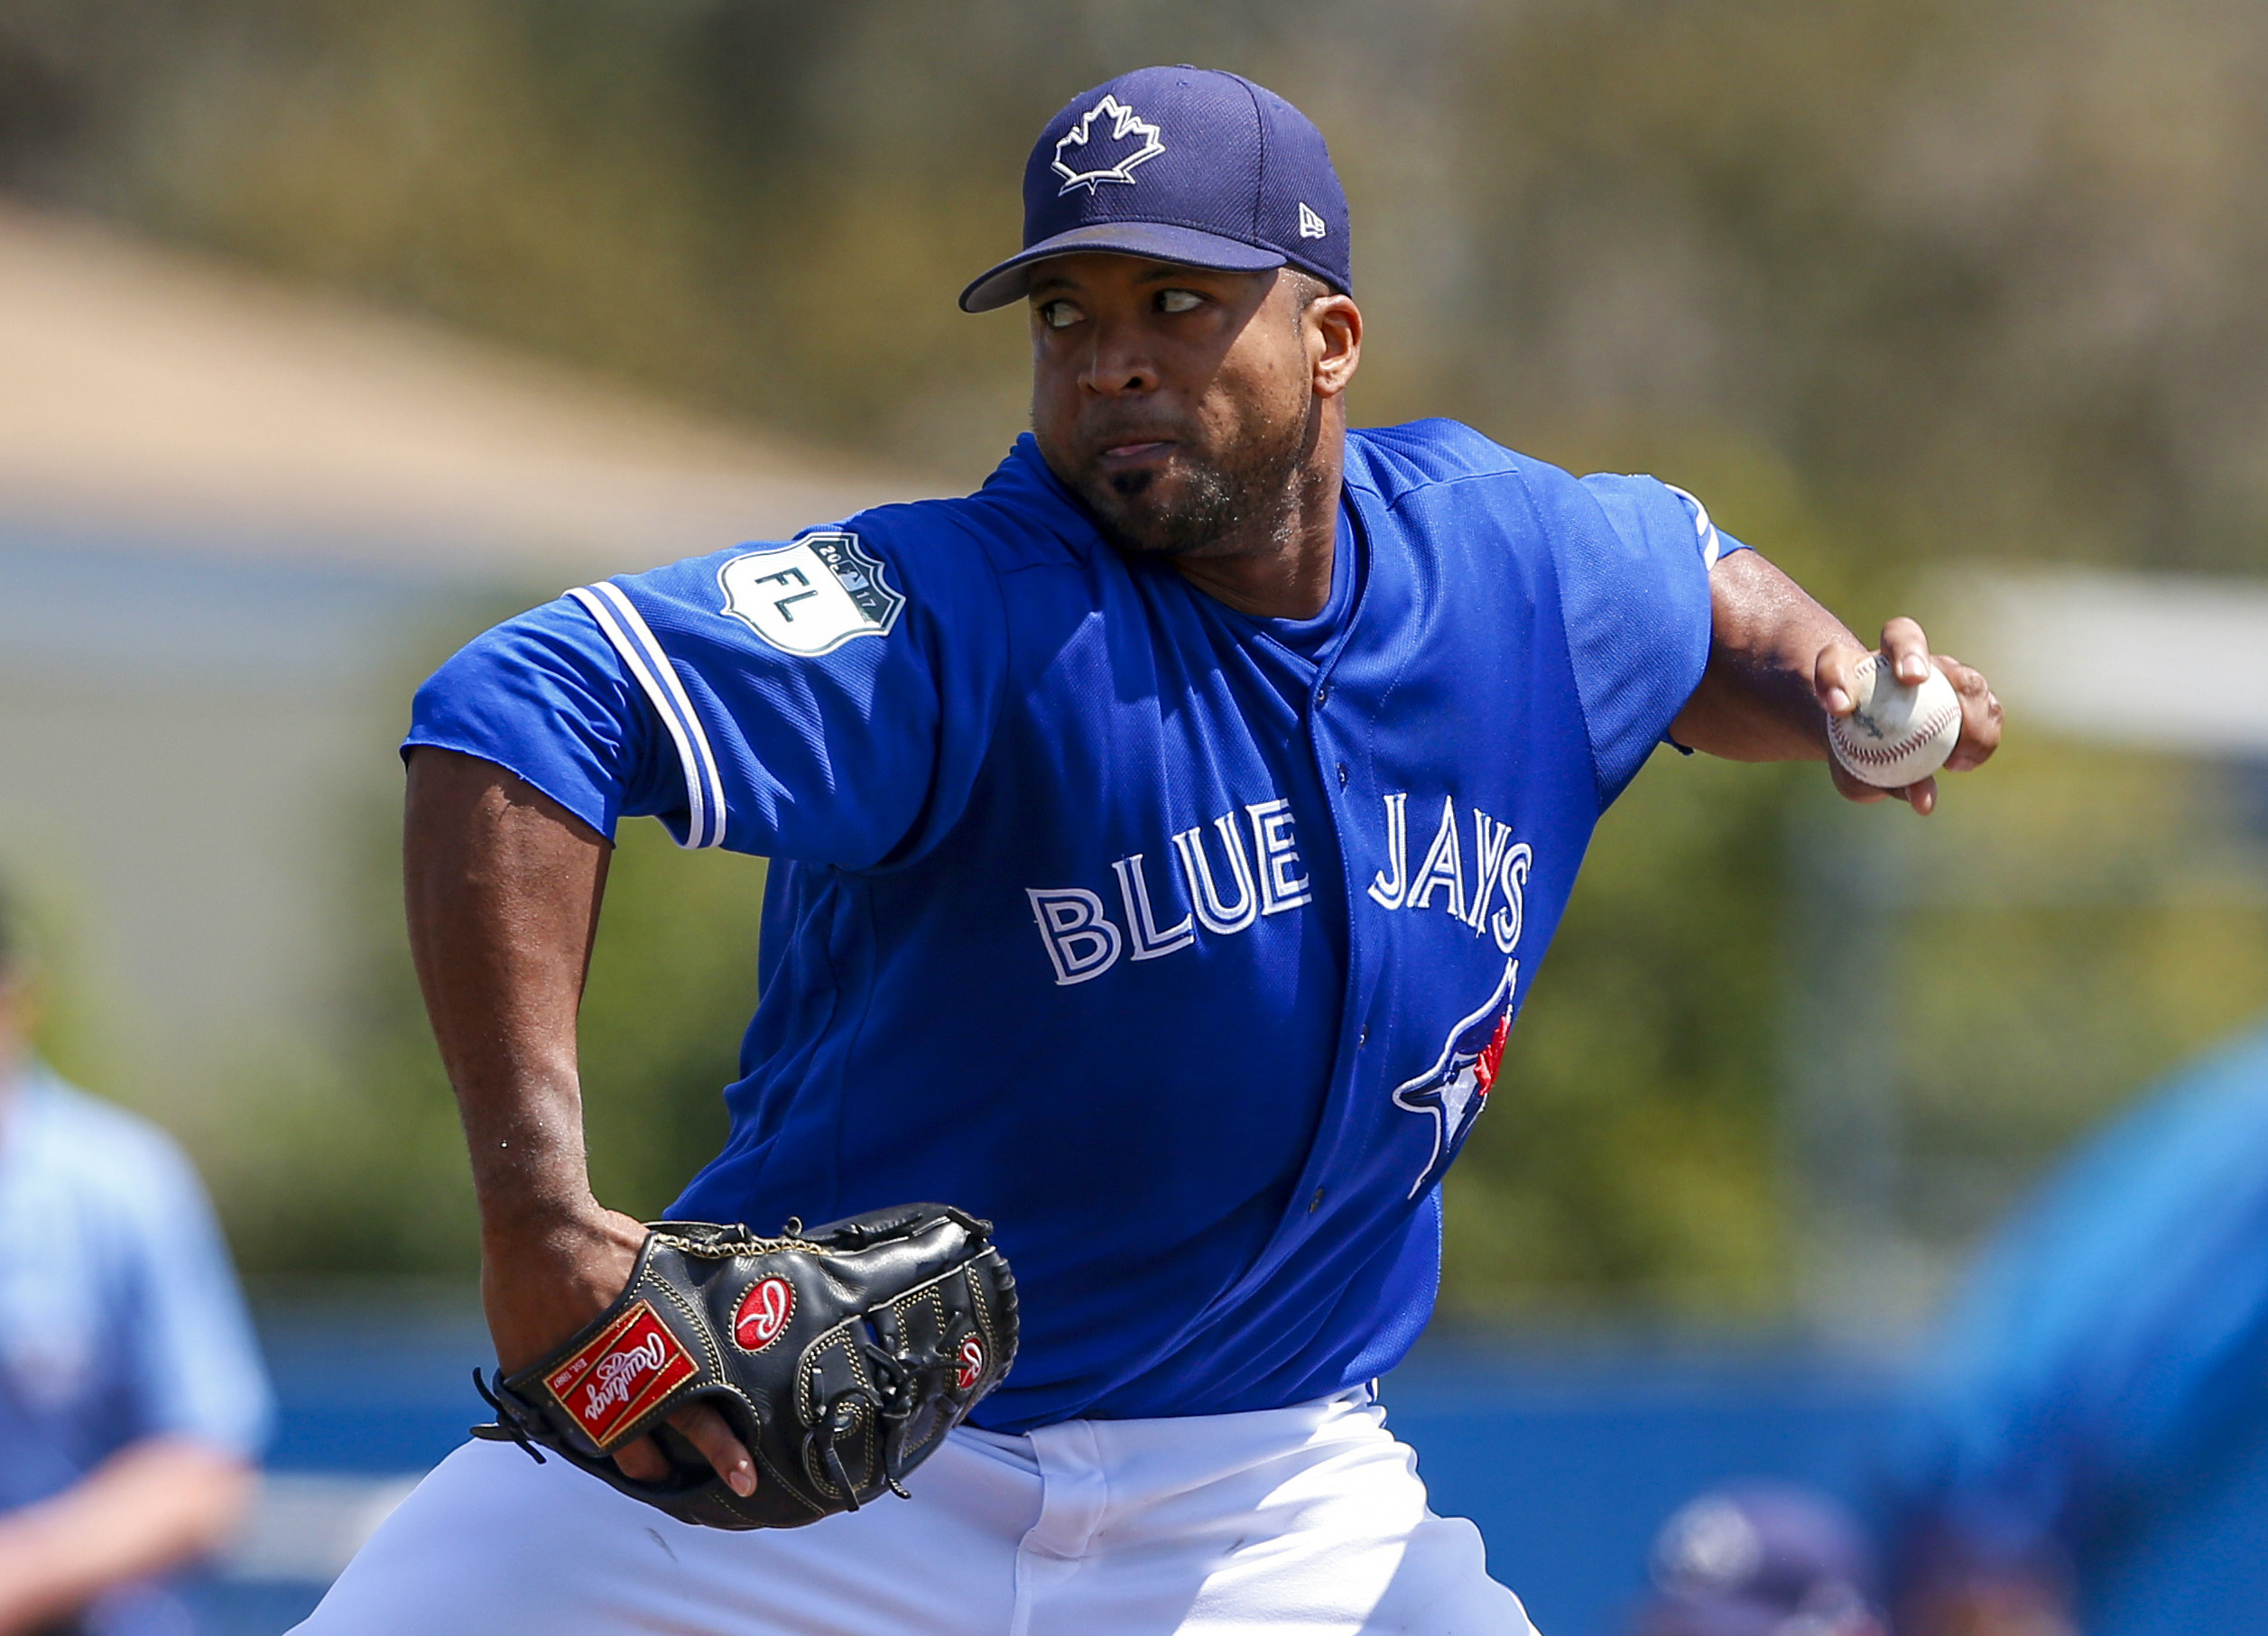 9971846-mlb-spring-training-baltimore-orioles-at-toronto-blue-jays